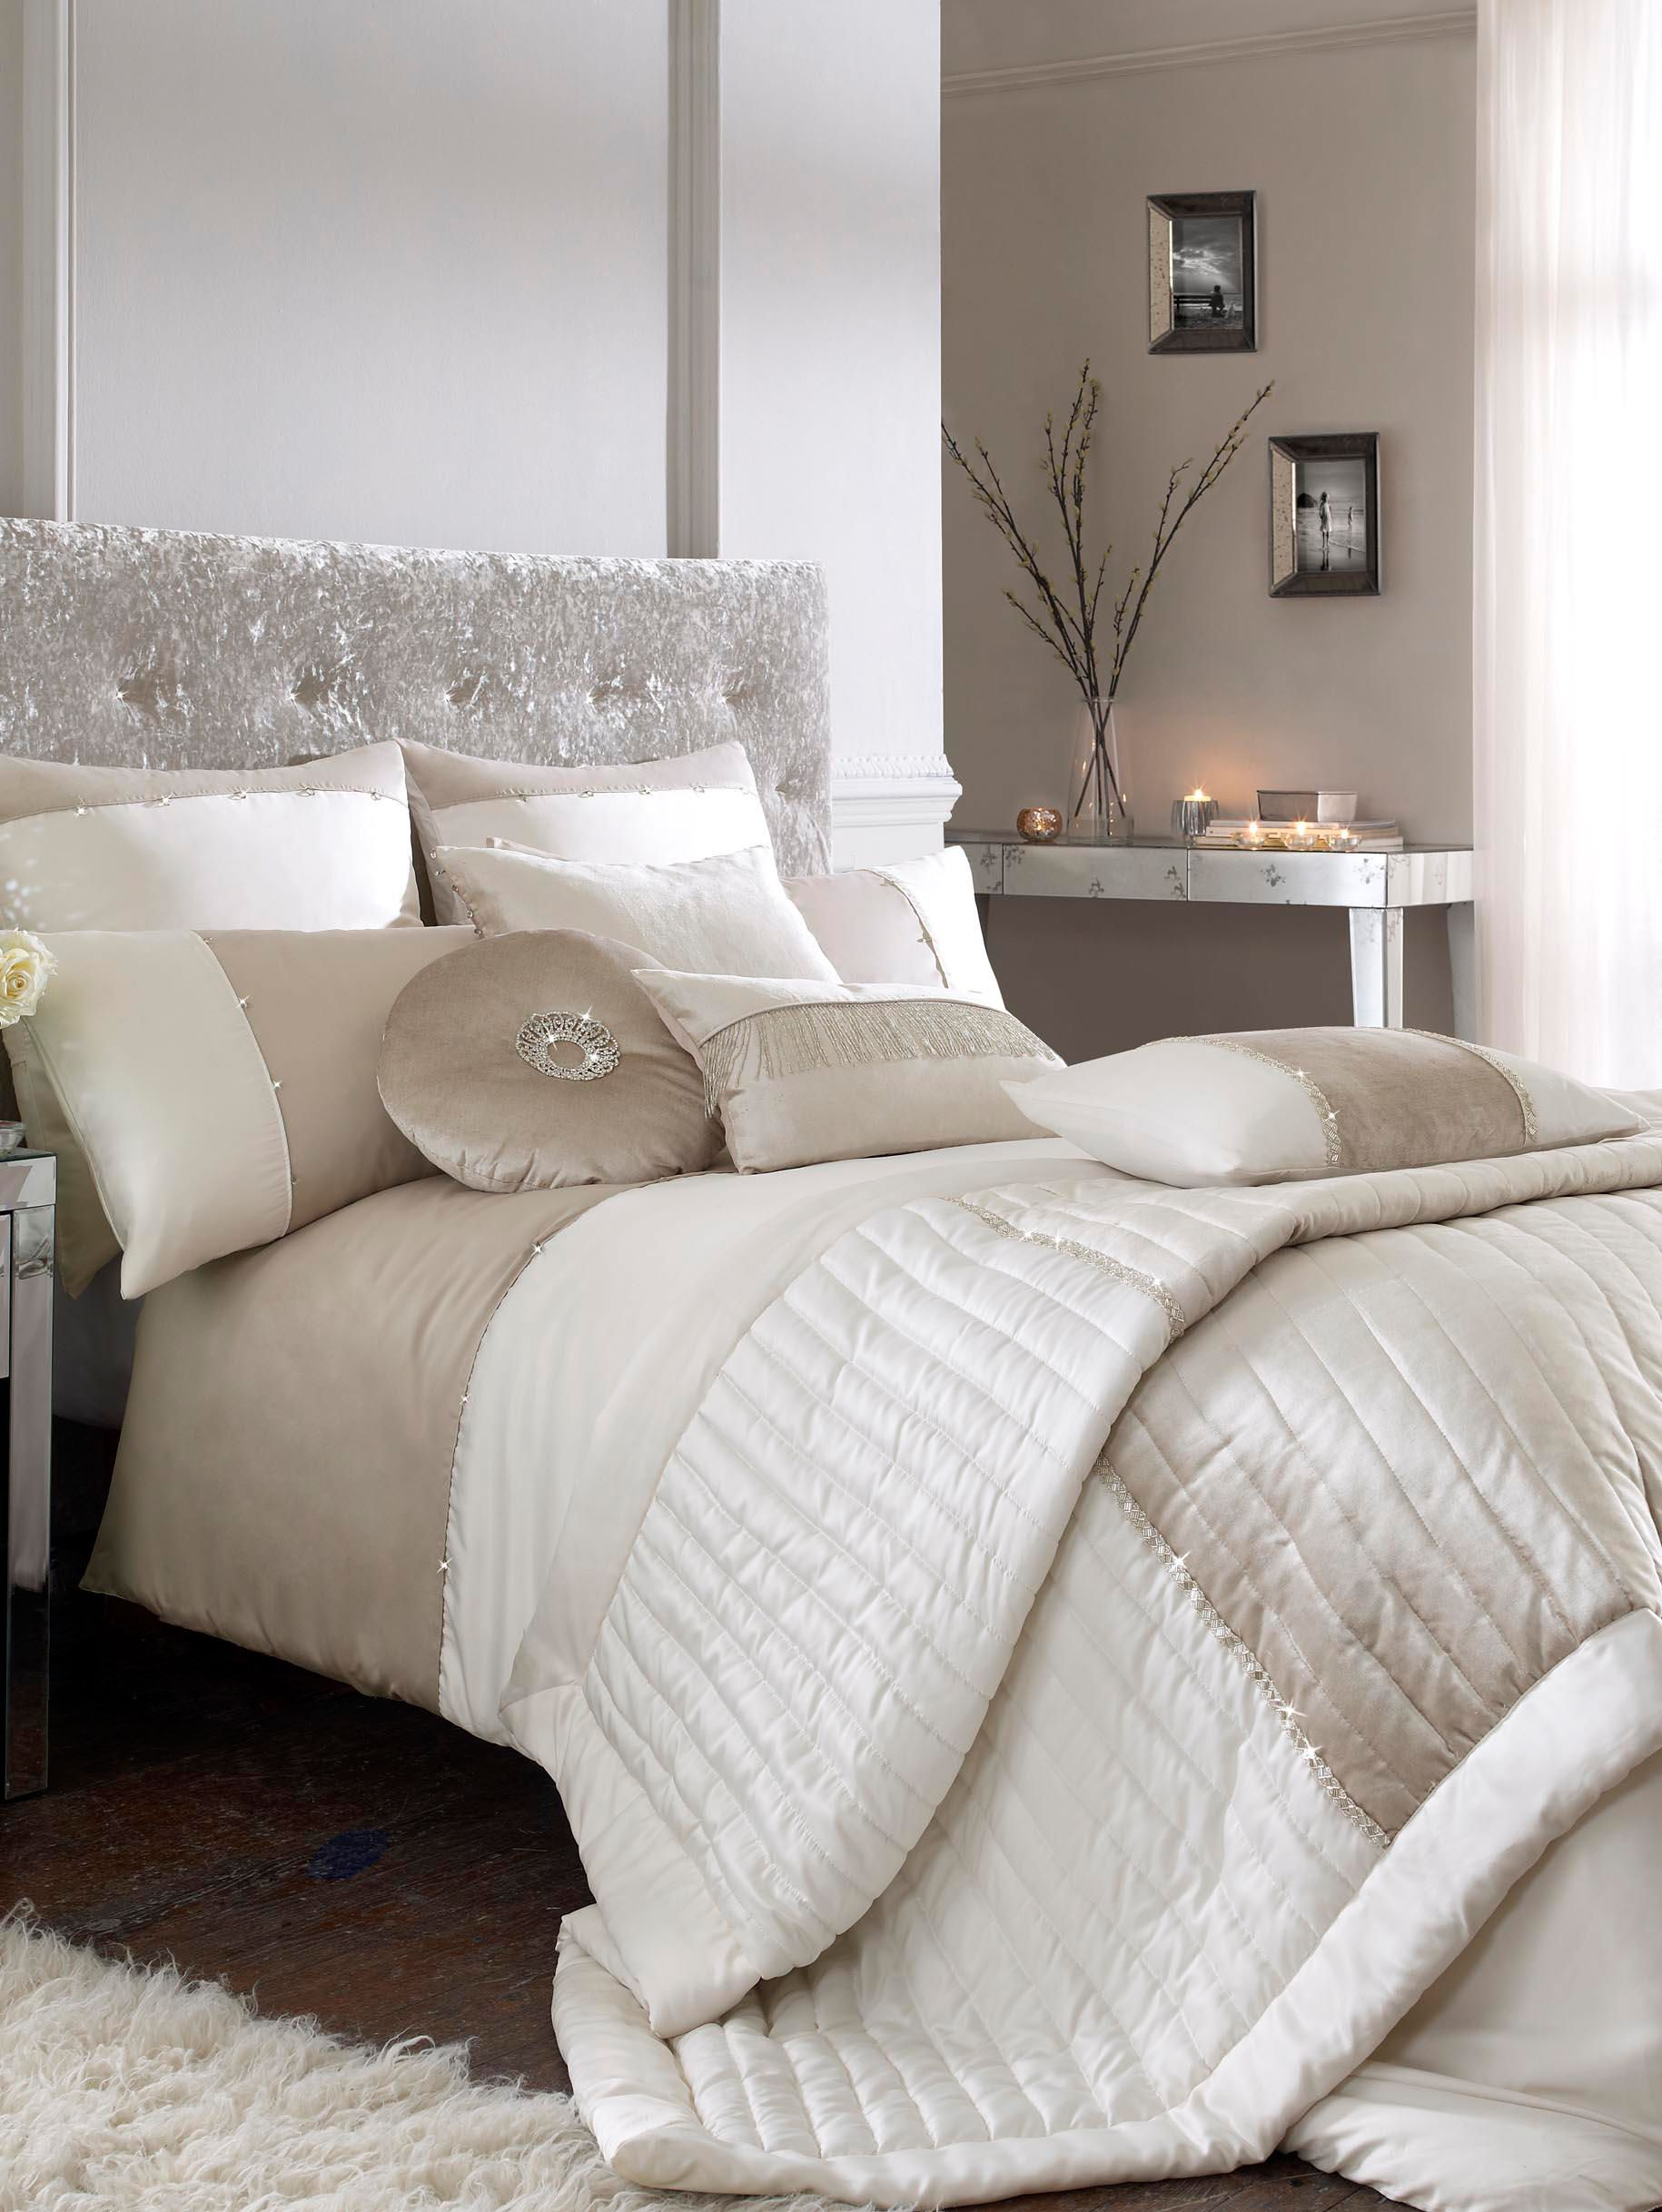 Crystal bed linen